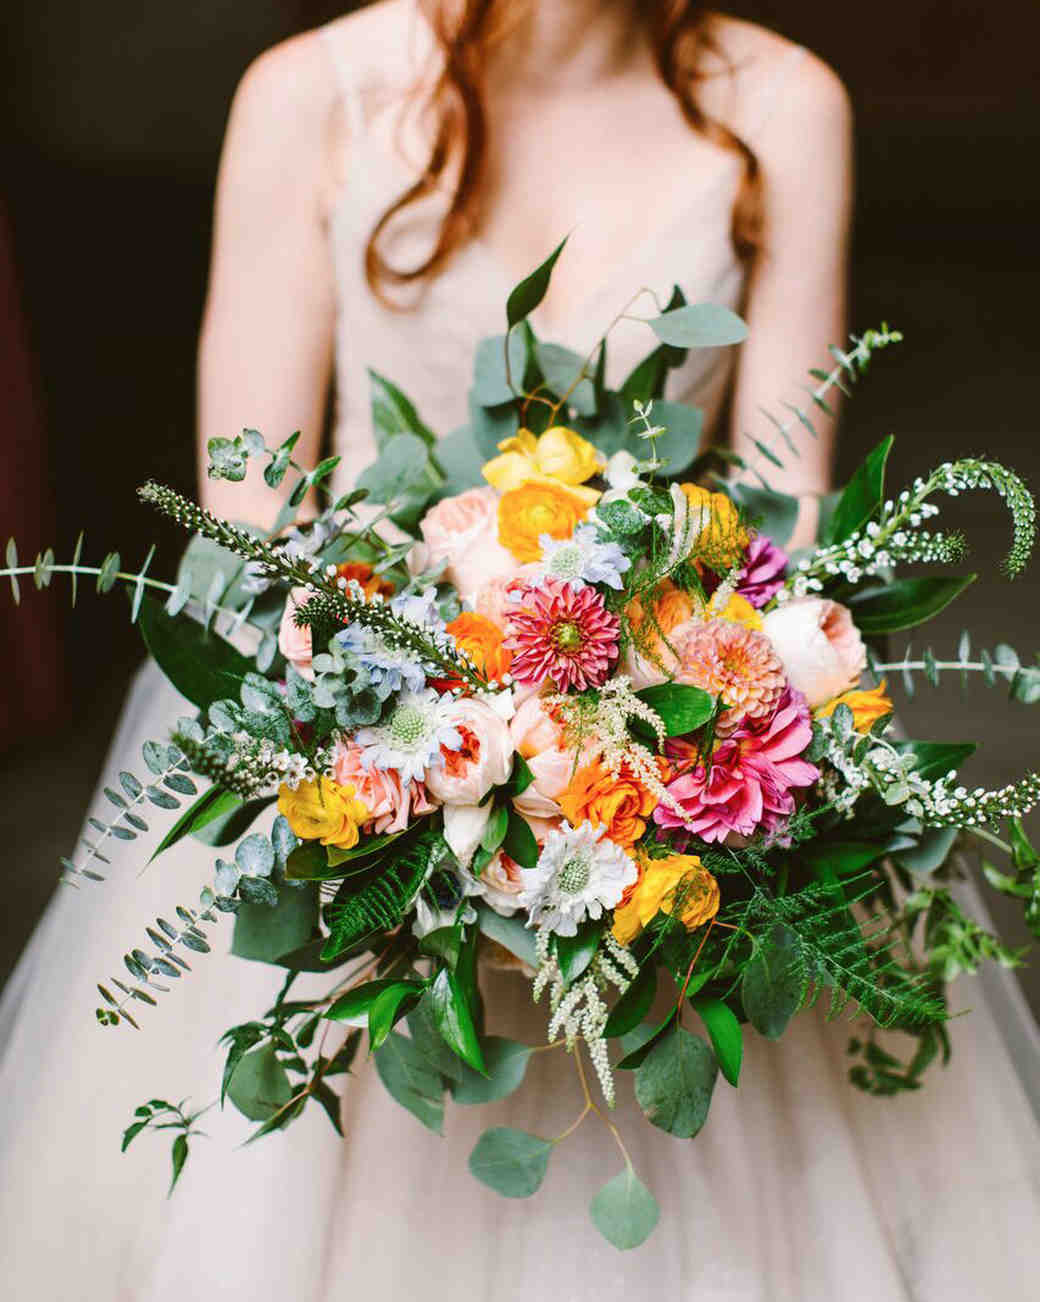 Summer Wedding Bouquets That Embrace the Season | Martha Stewart Weddings